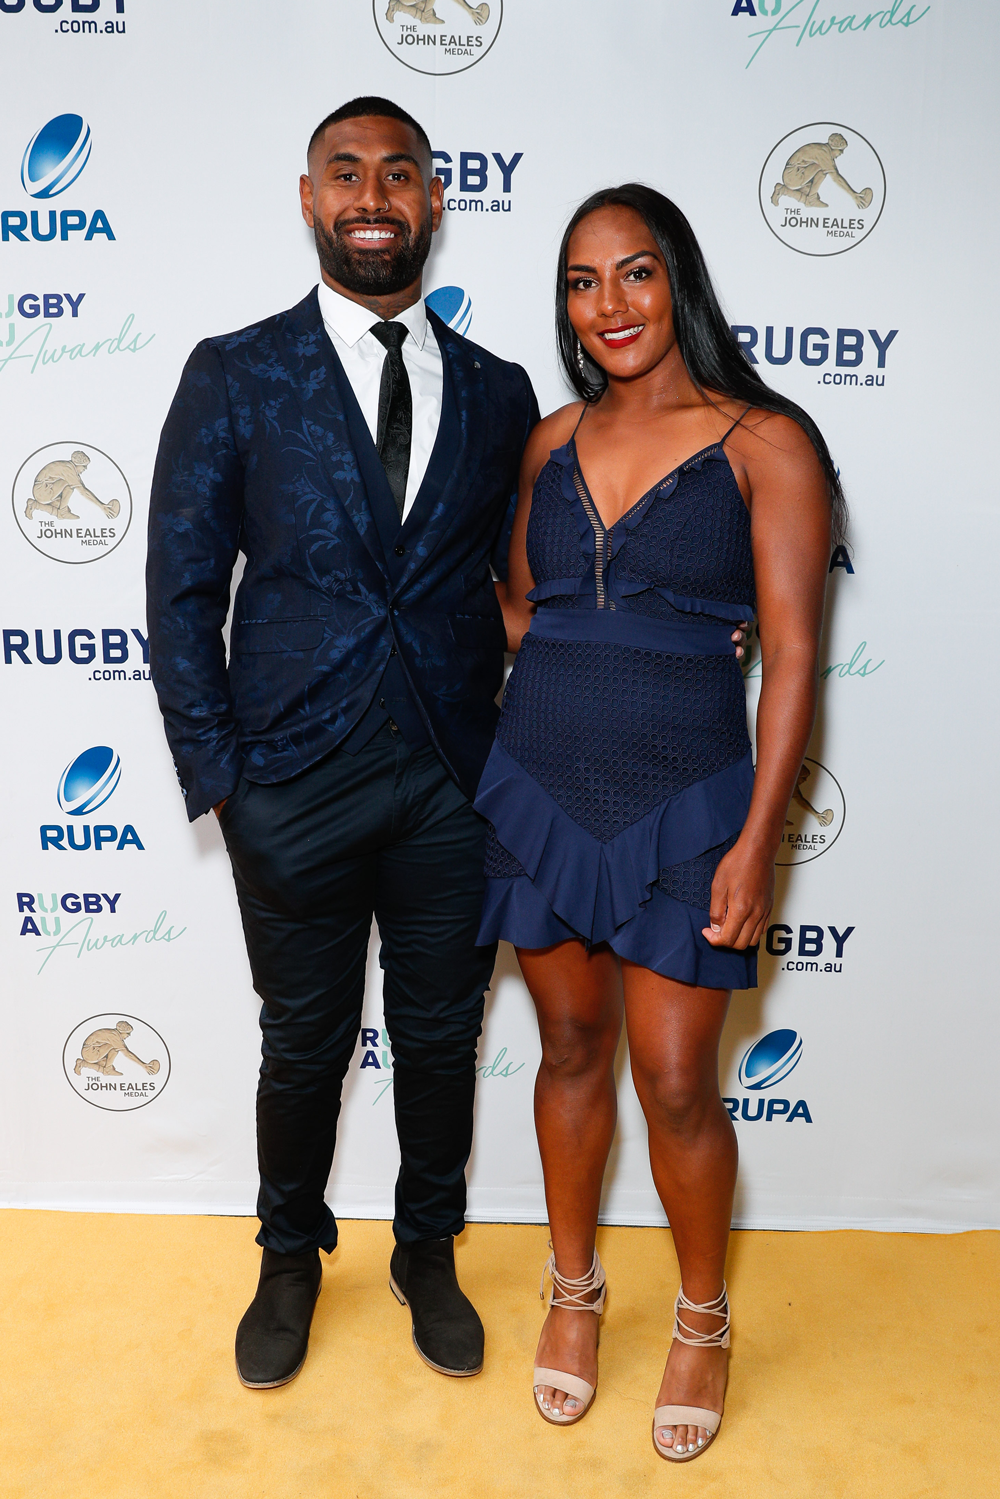 Mahalia Murphy and her partner at the Rugby Australia Awards. Photo: Getty Images